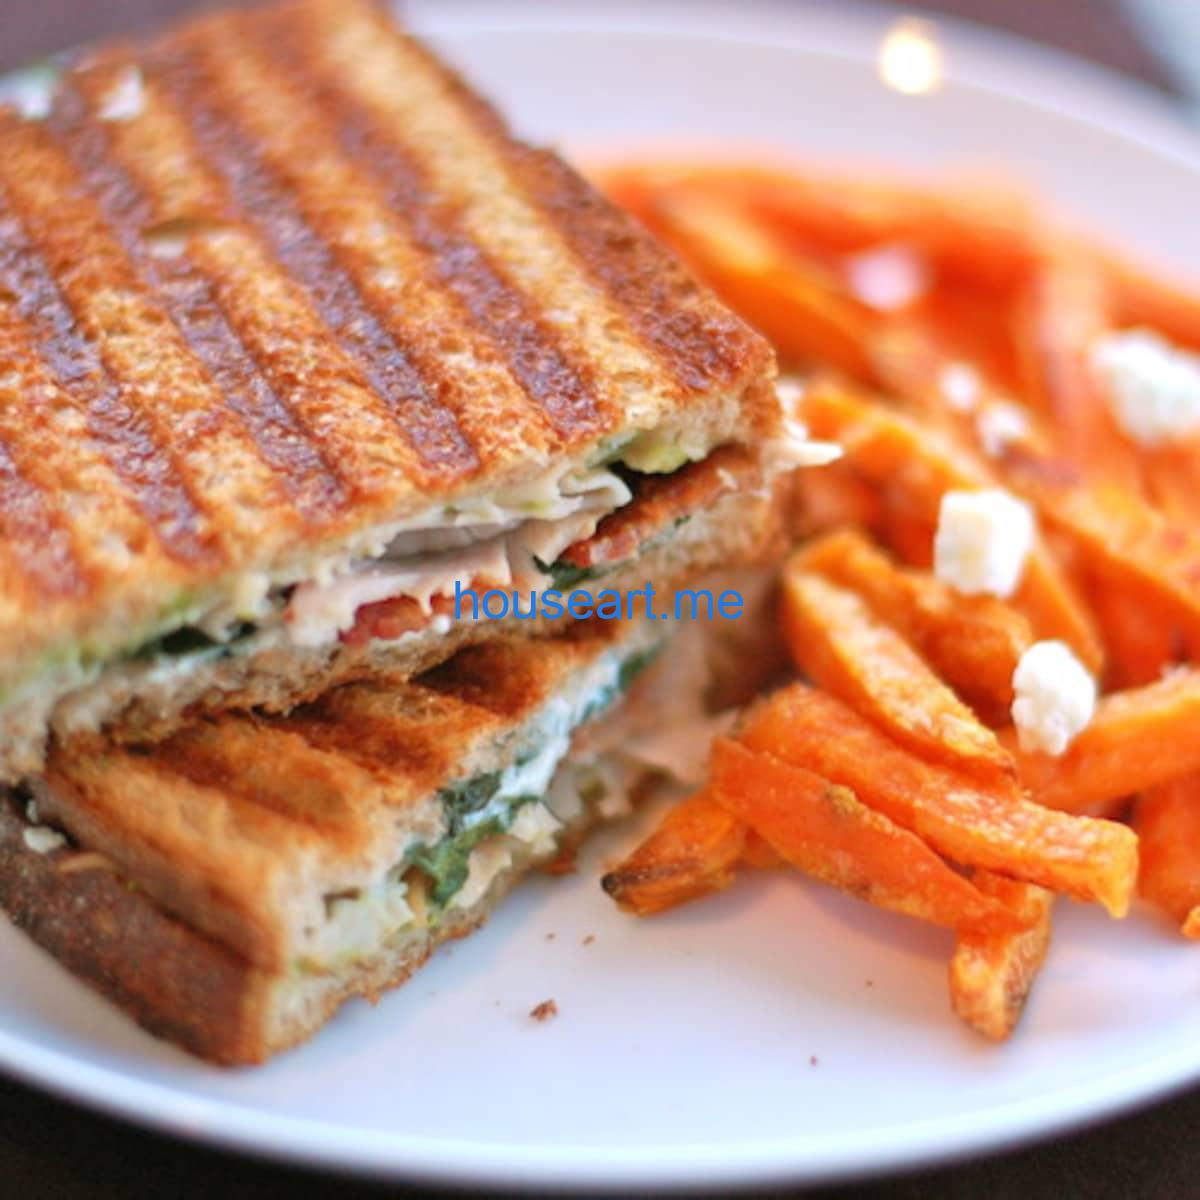 Gorgonzola and bacon panini with spinach on a plate with sweet potato fries.